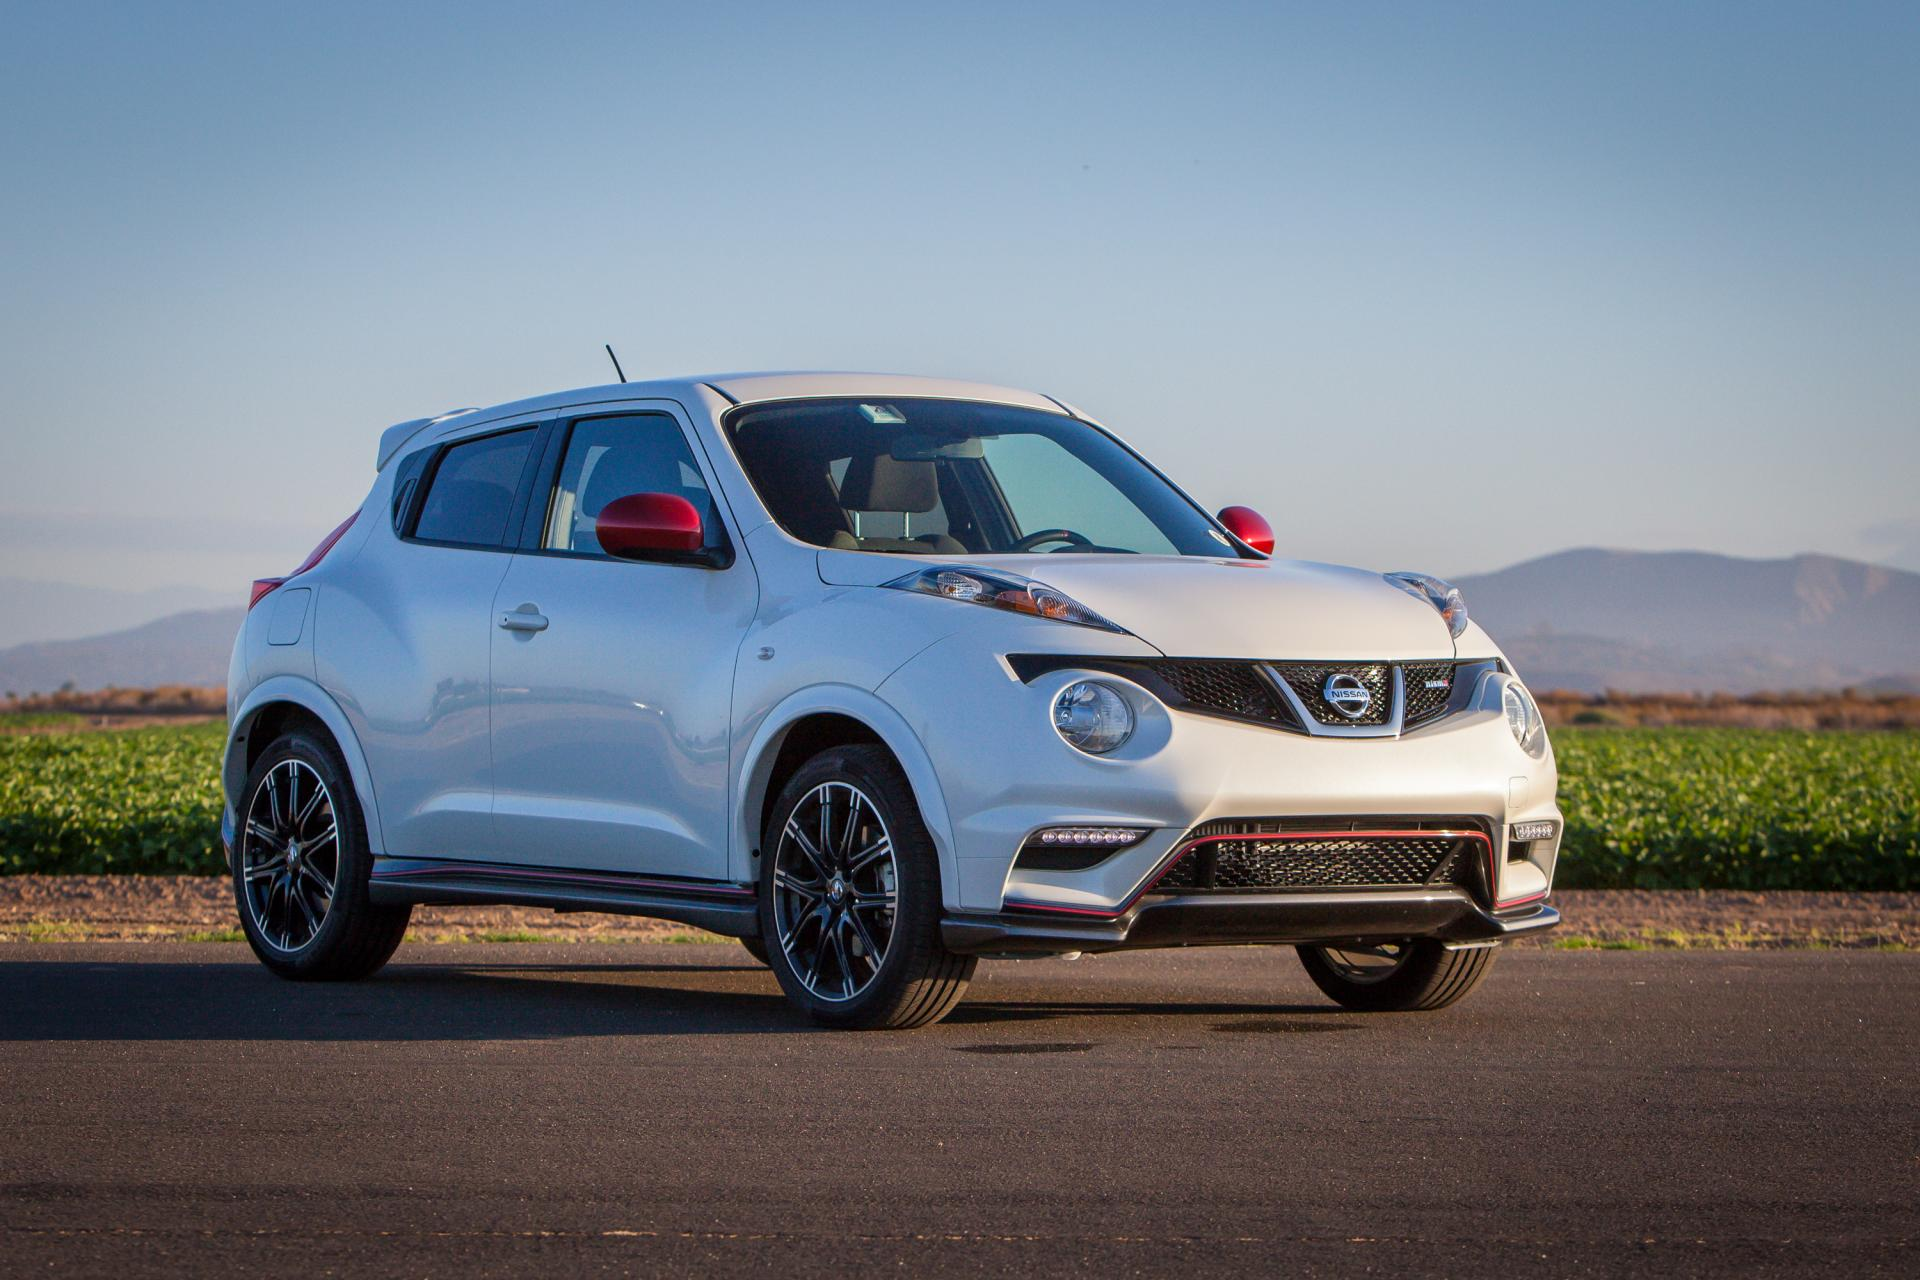 2014 nissan juke nismo technical specifications and data. Black Bedroom Furniture Sets. Home Design Ideas